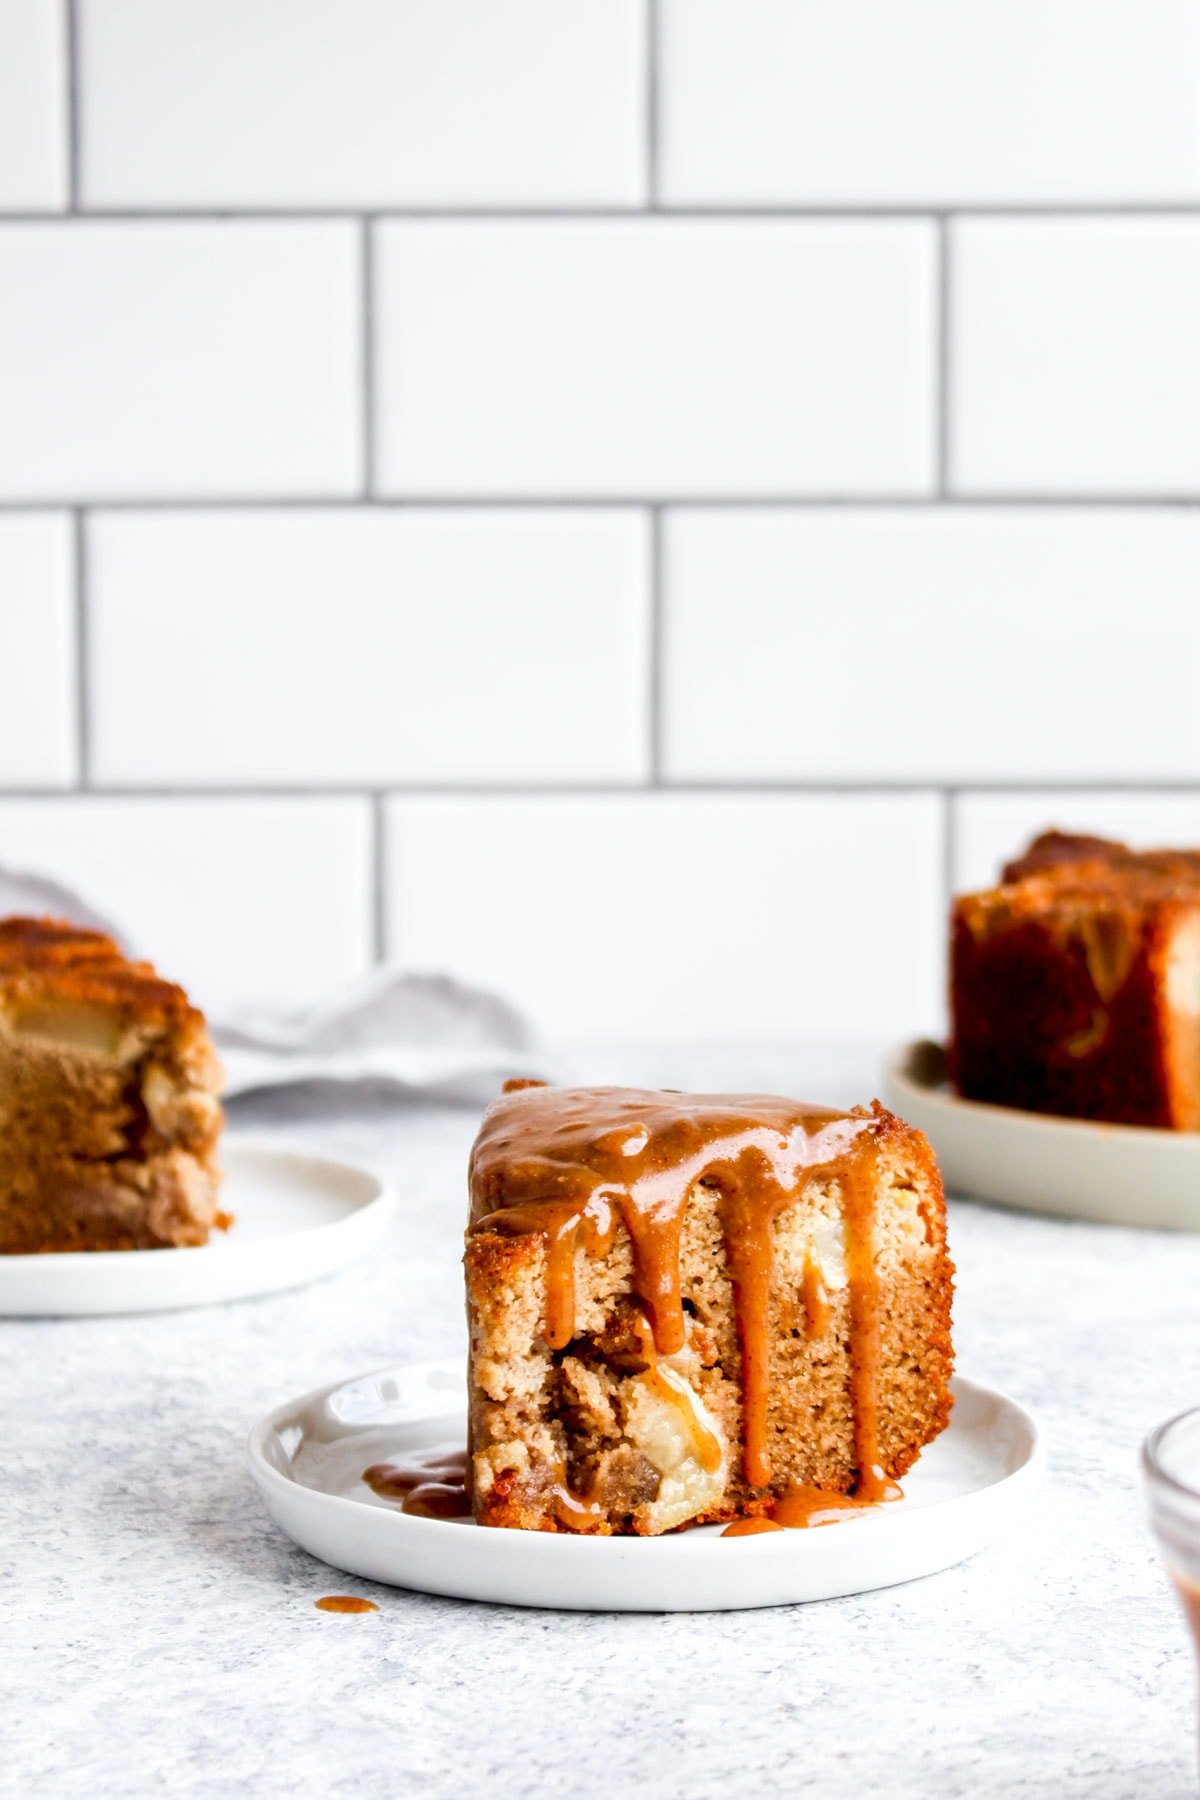 Caramel sauce dripping down the sides of a slice of paleo pear cake.